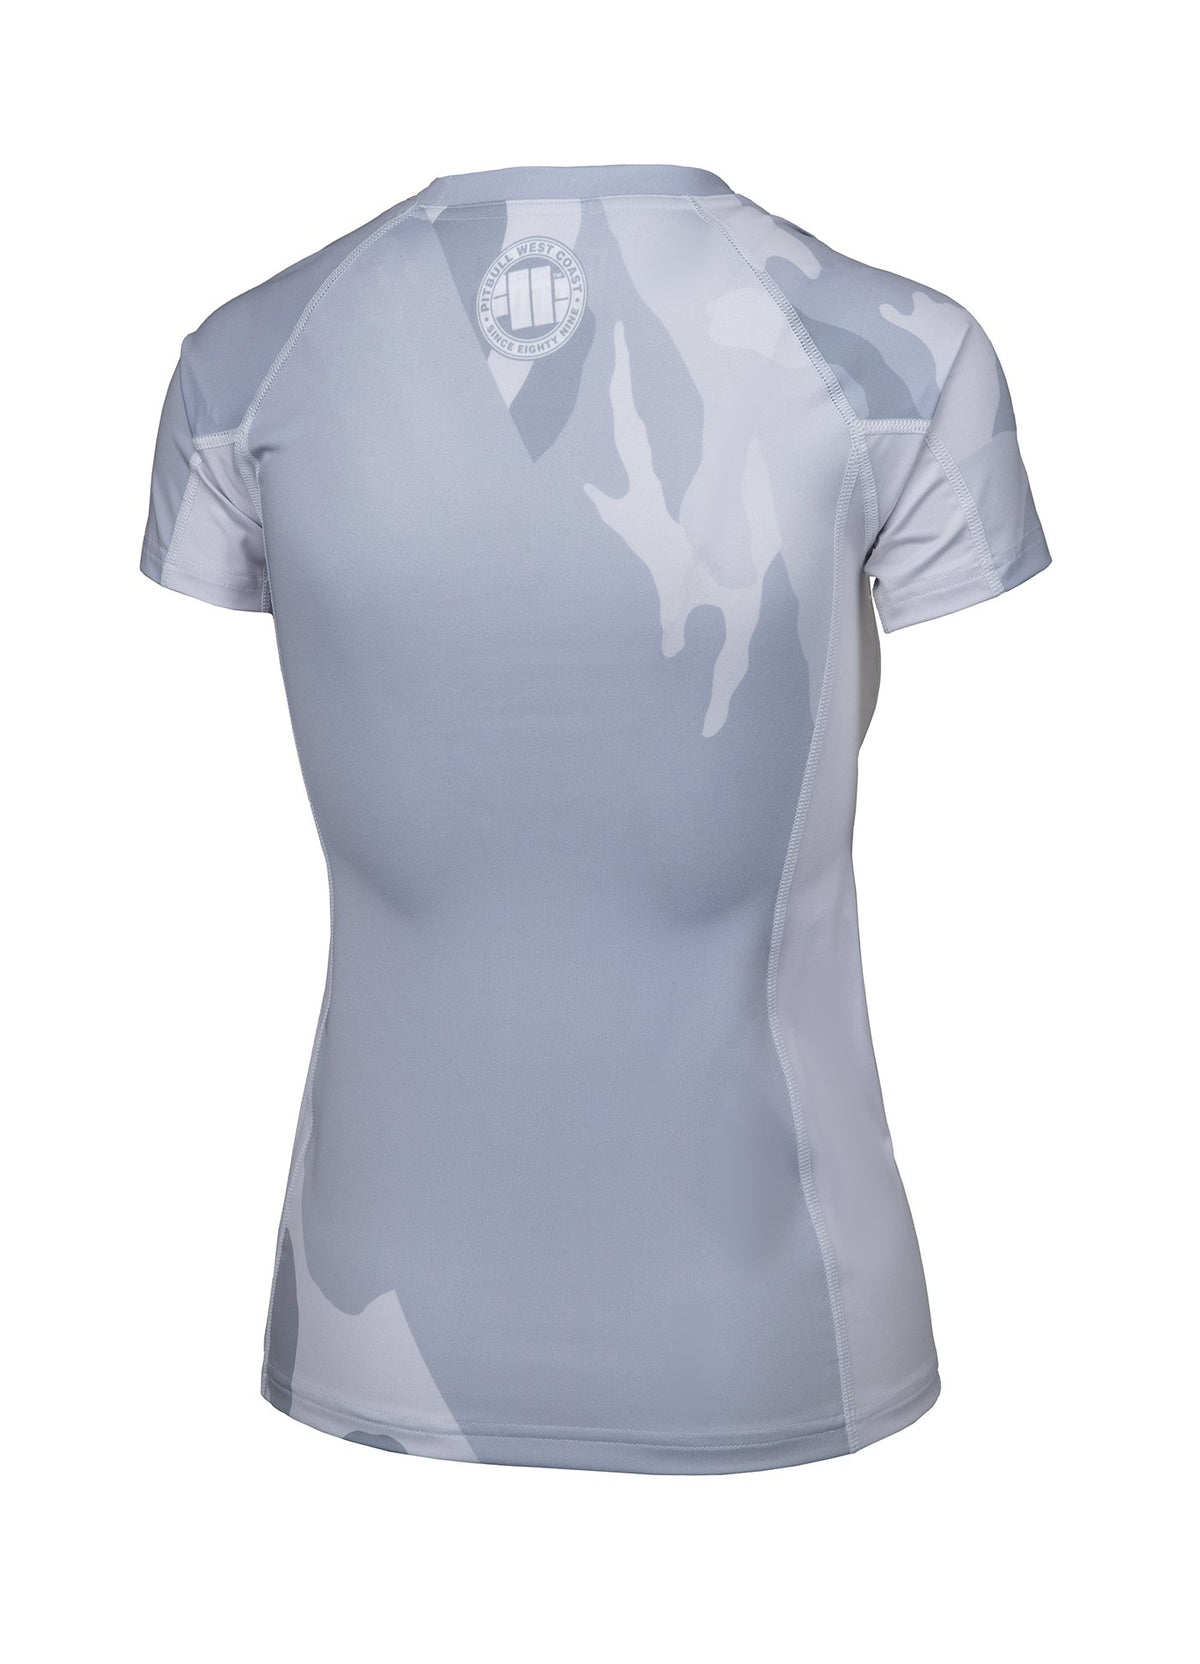 Women Rashguard Short Sleeve WHITE CAMO - Pitbull West Coast U.S.A.